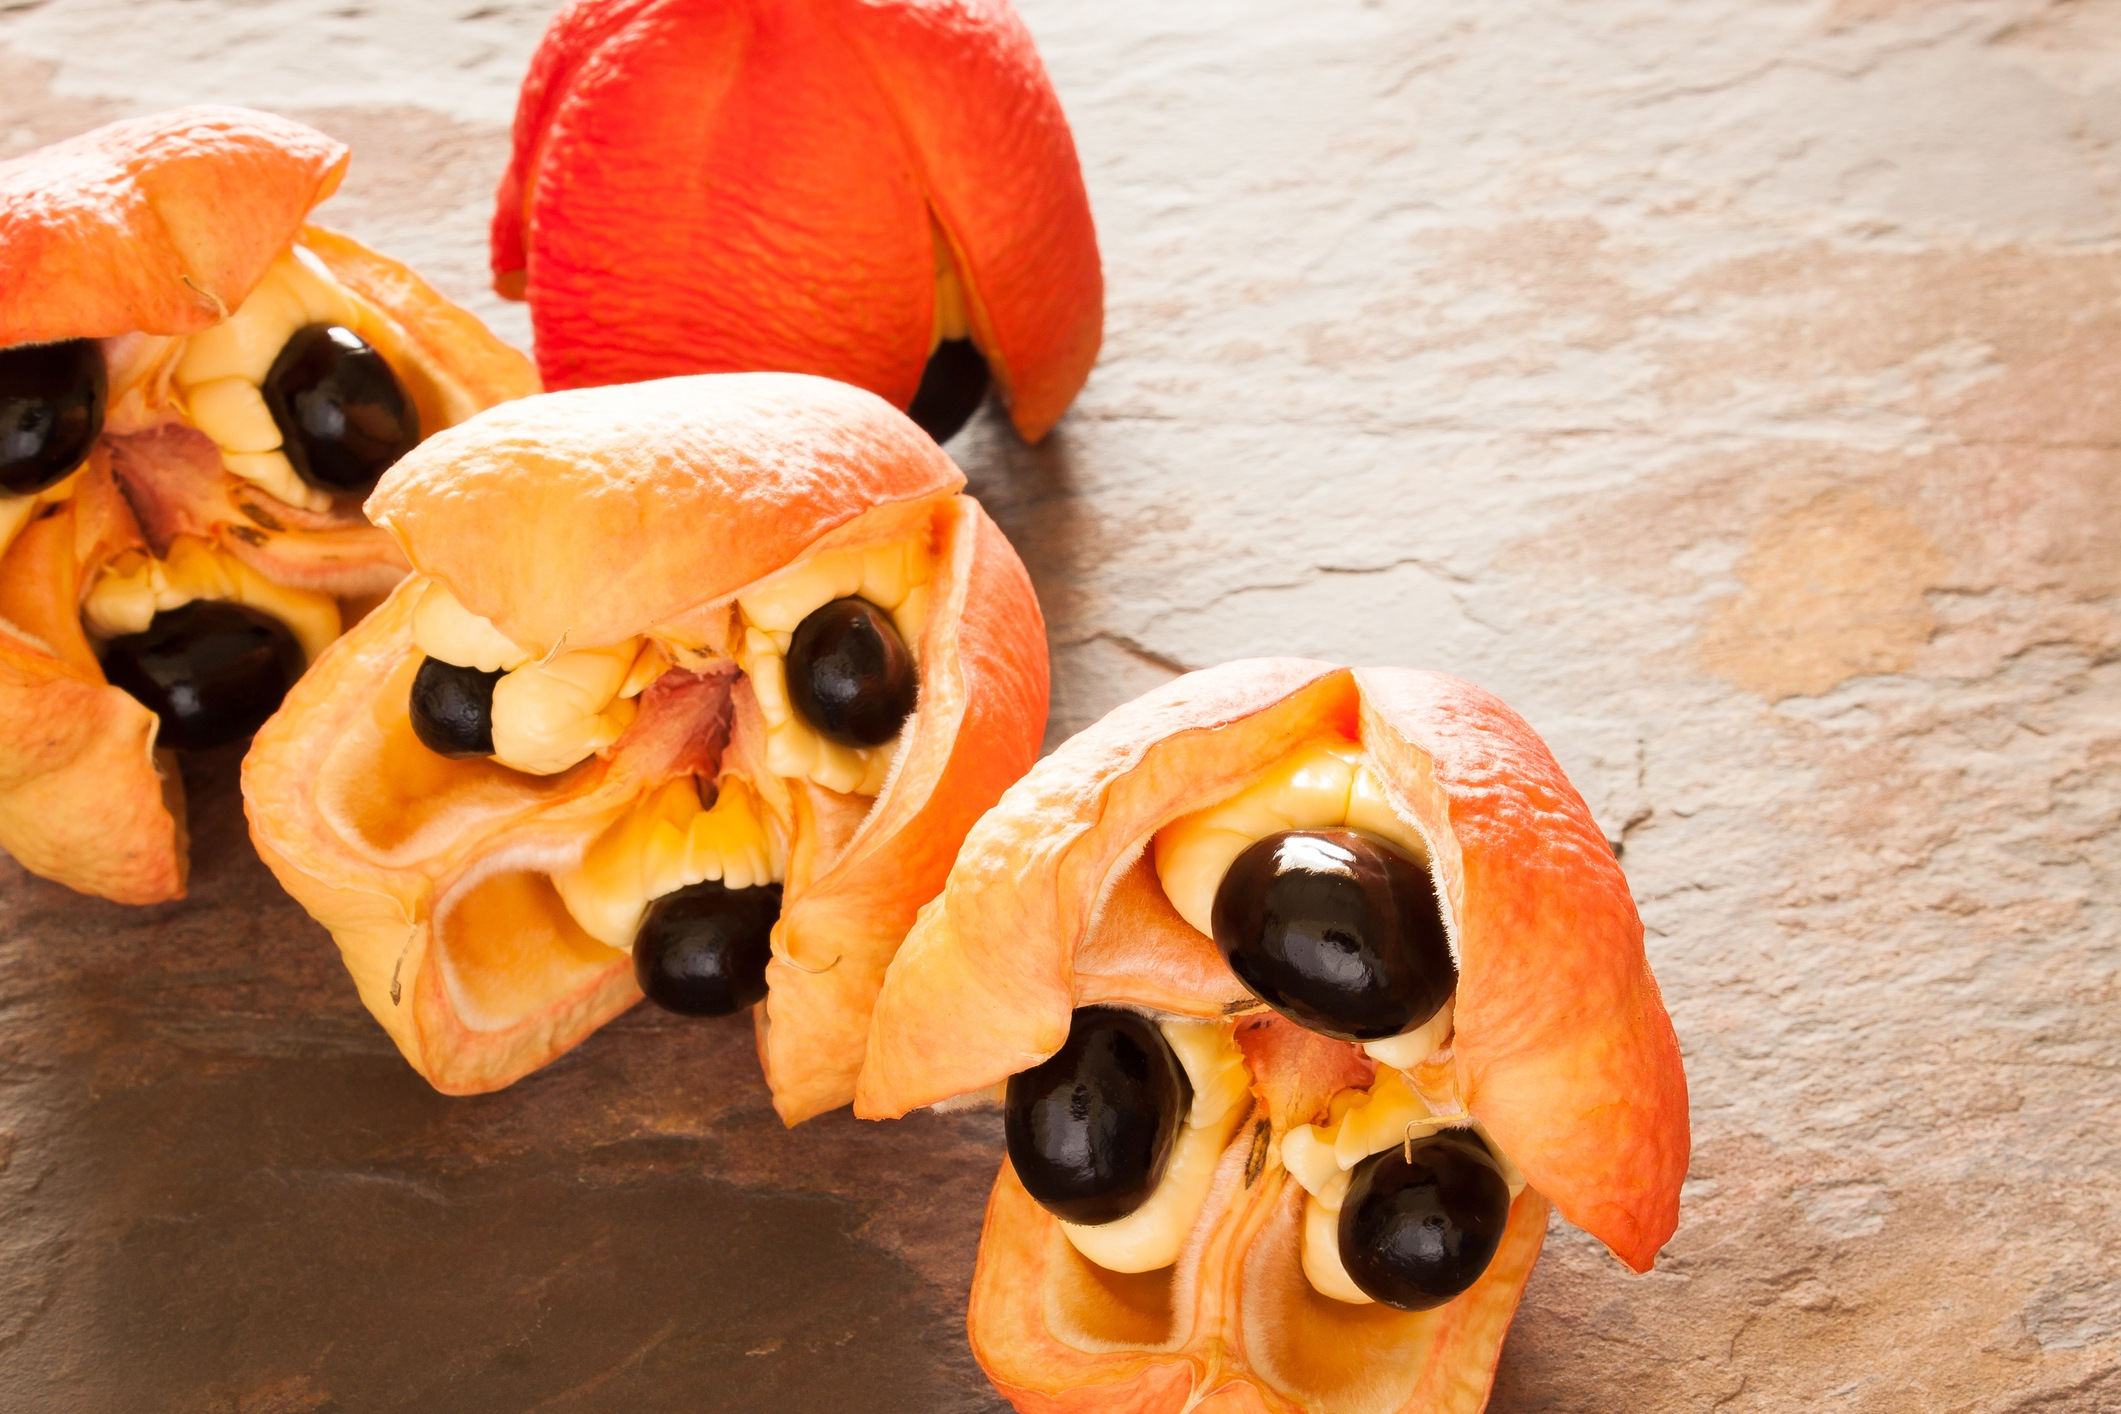 Ackee Pod fruit